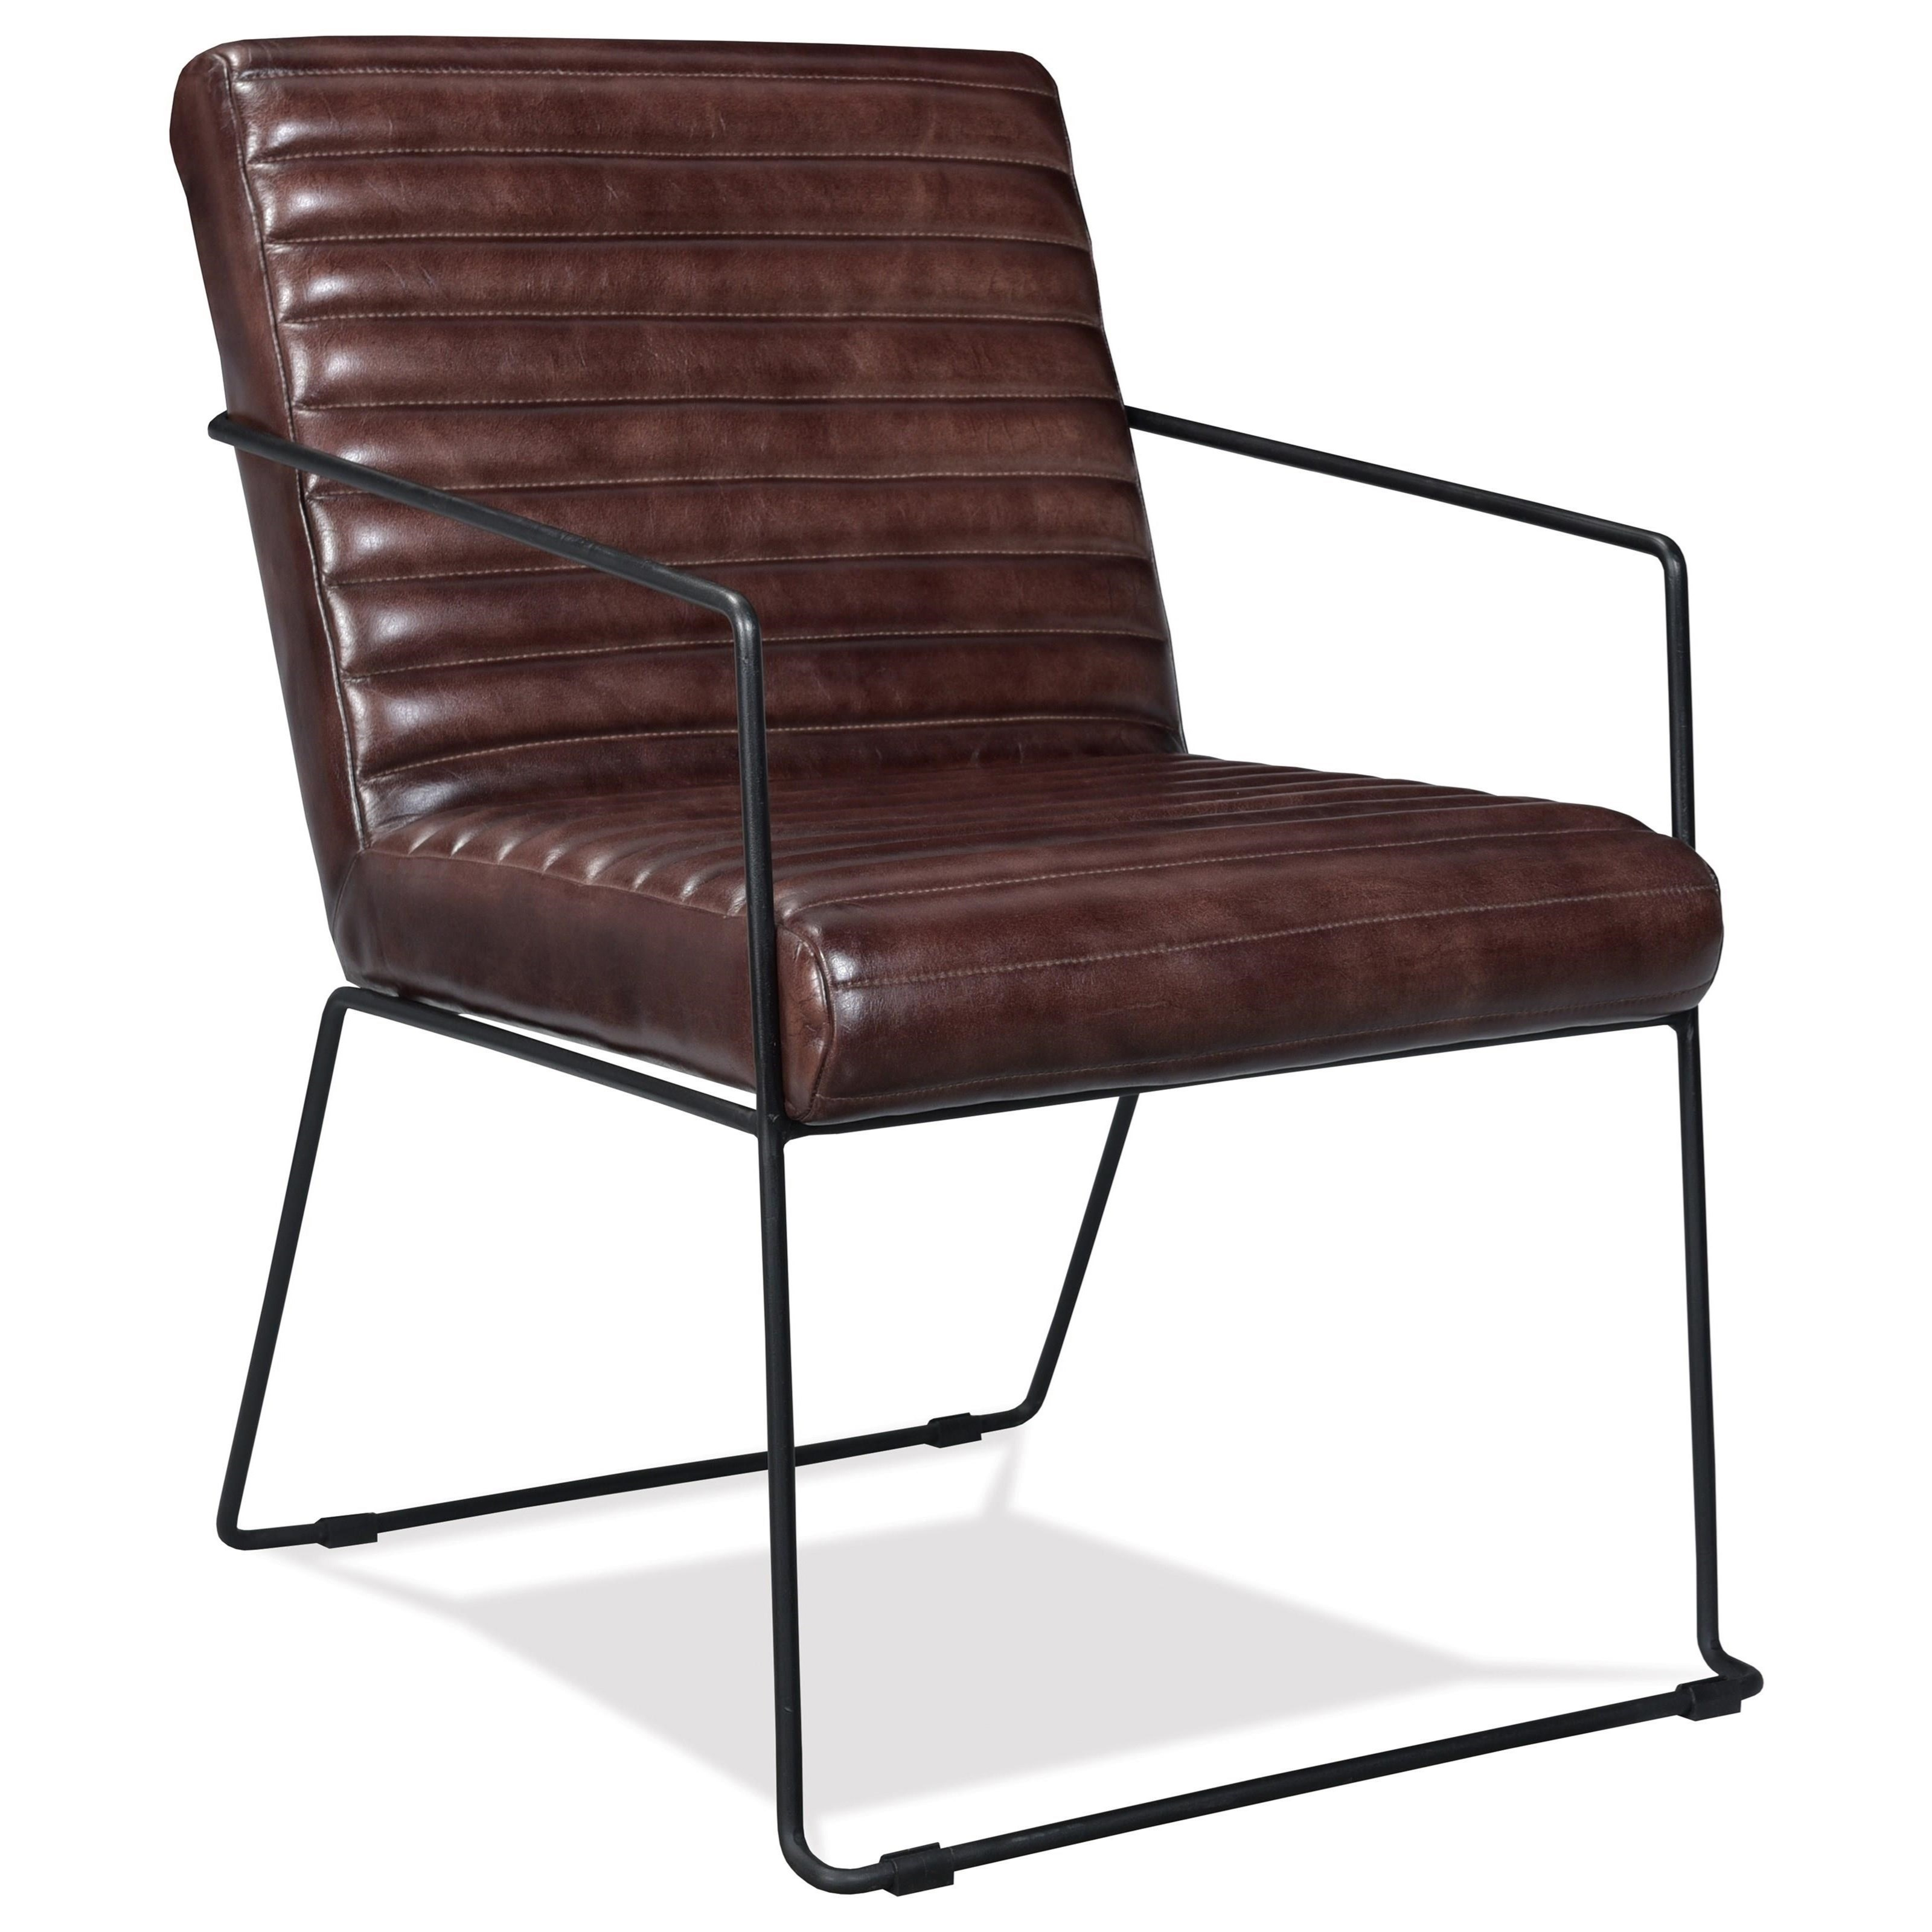 Mix-N-Match Chairs Horizontal Tufted Leather Arm Chair by Riverside Furniture at Zak's Home